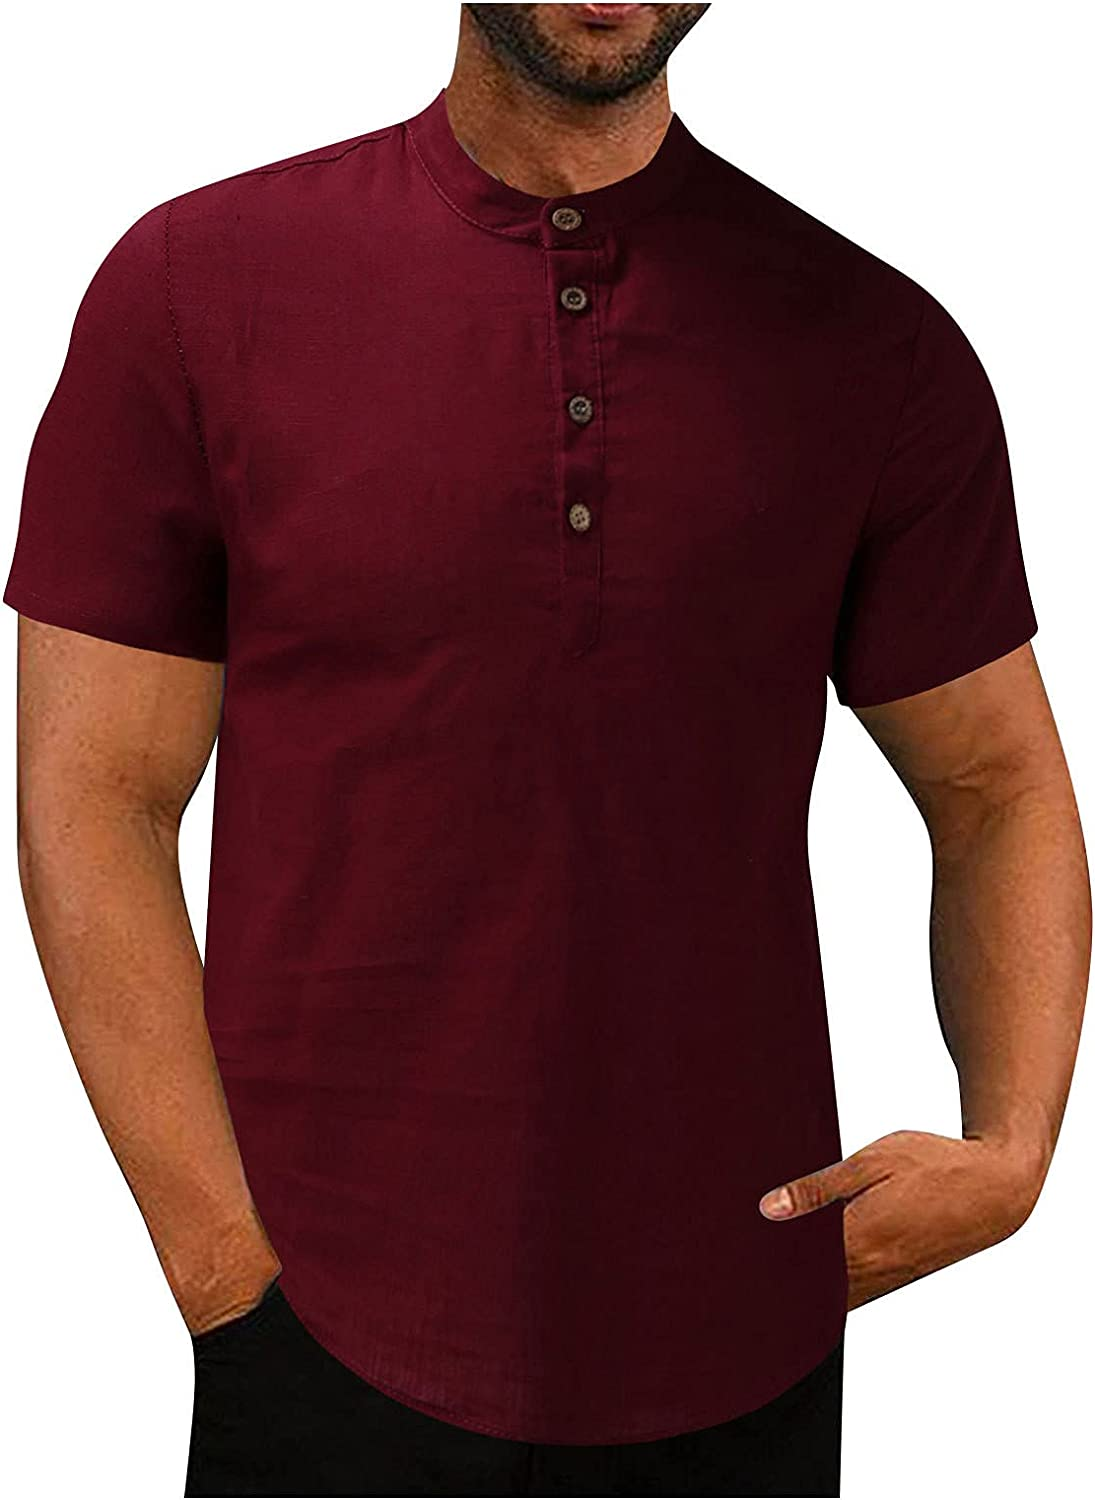 Men's Classic Henley Button Tee Shirt Casual Comfort Soft Slim Tops Solid Retro Short Sleeve T-Shirts Blouse